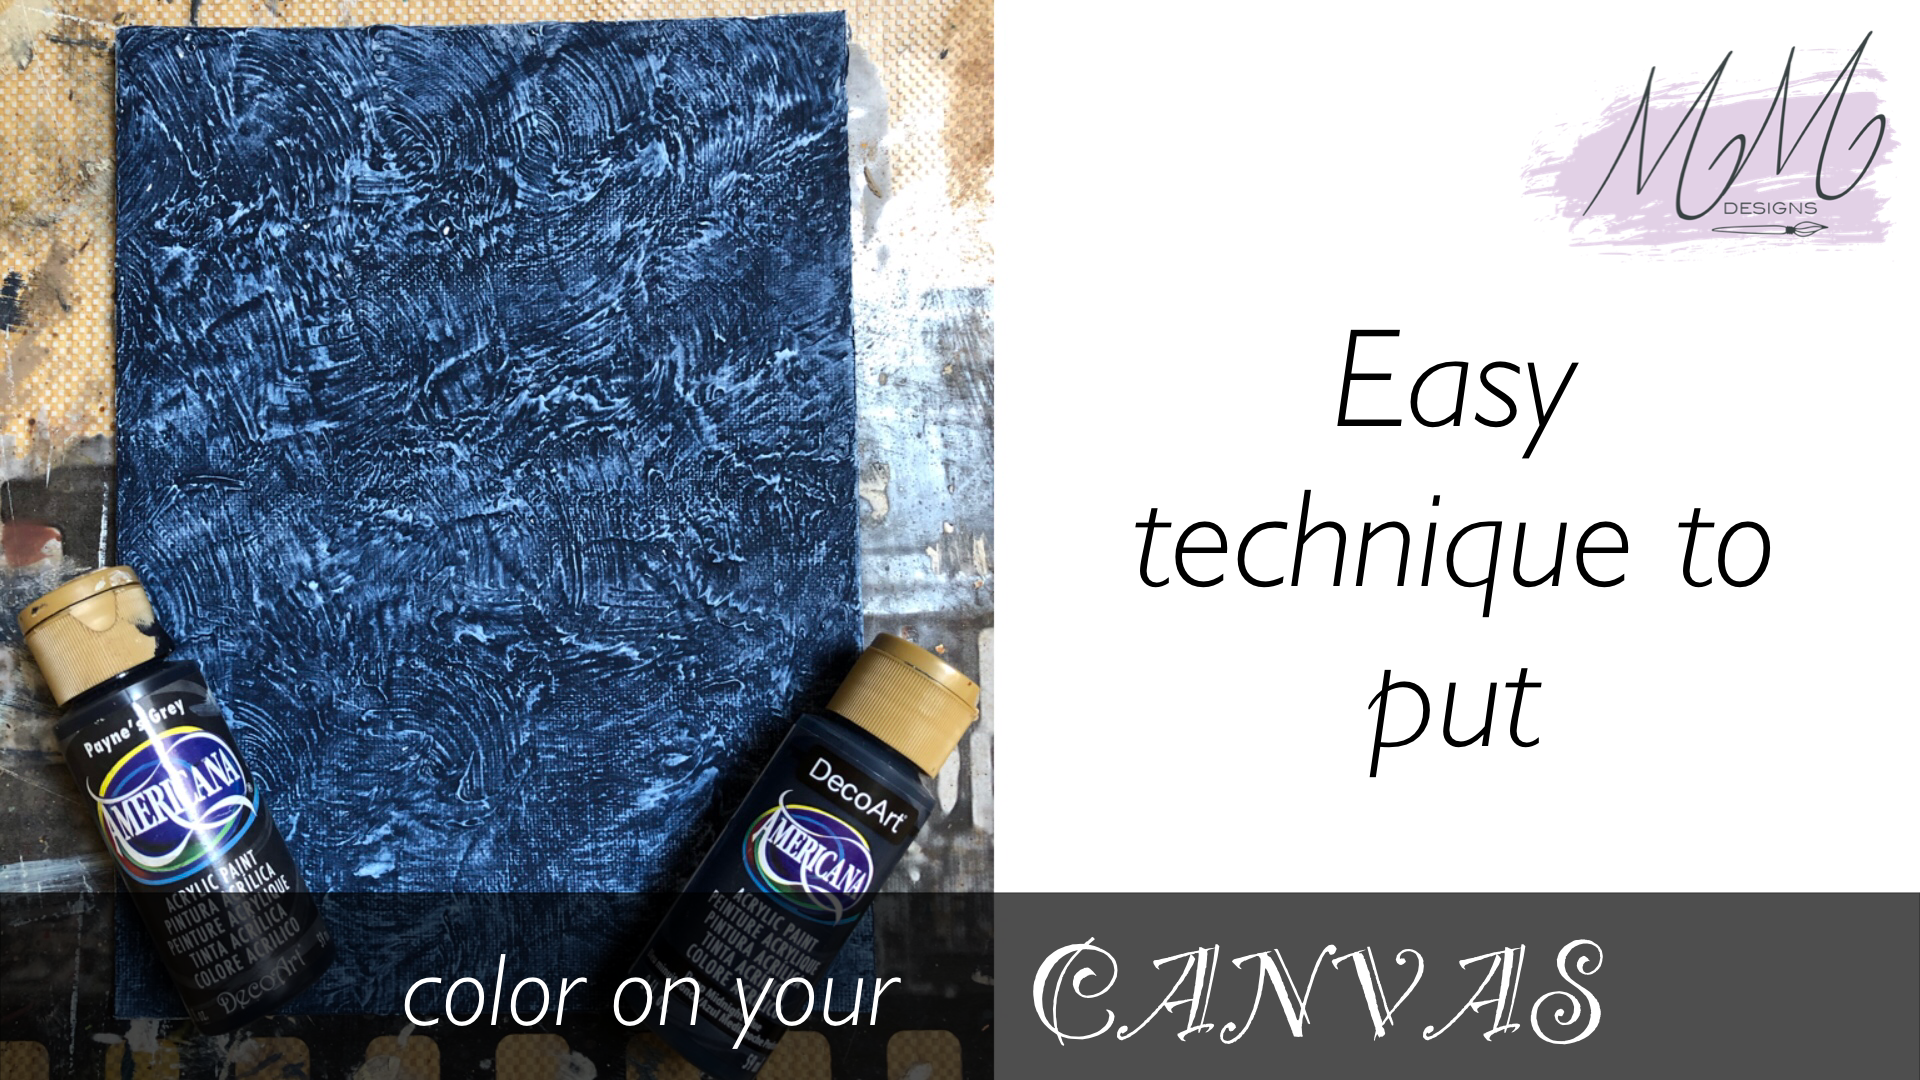 Decorative Painting Tutorial: interesting backgrounds for your canvas